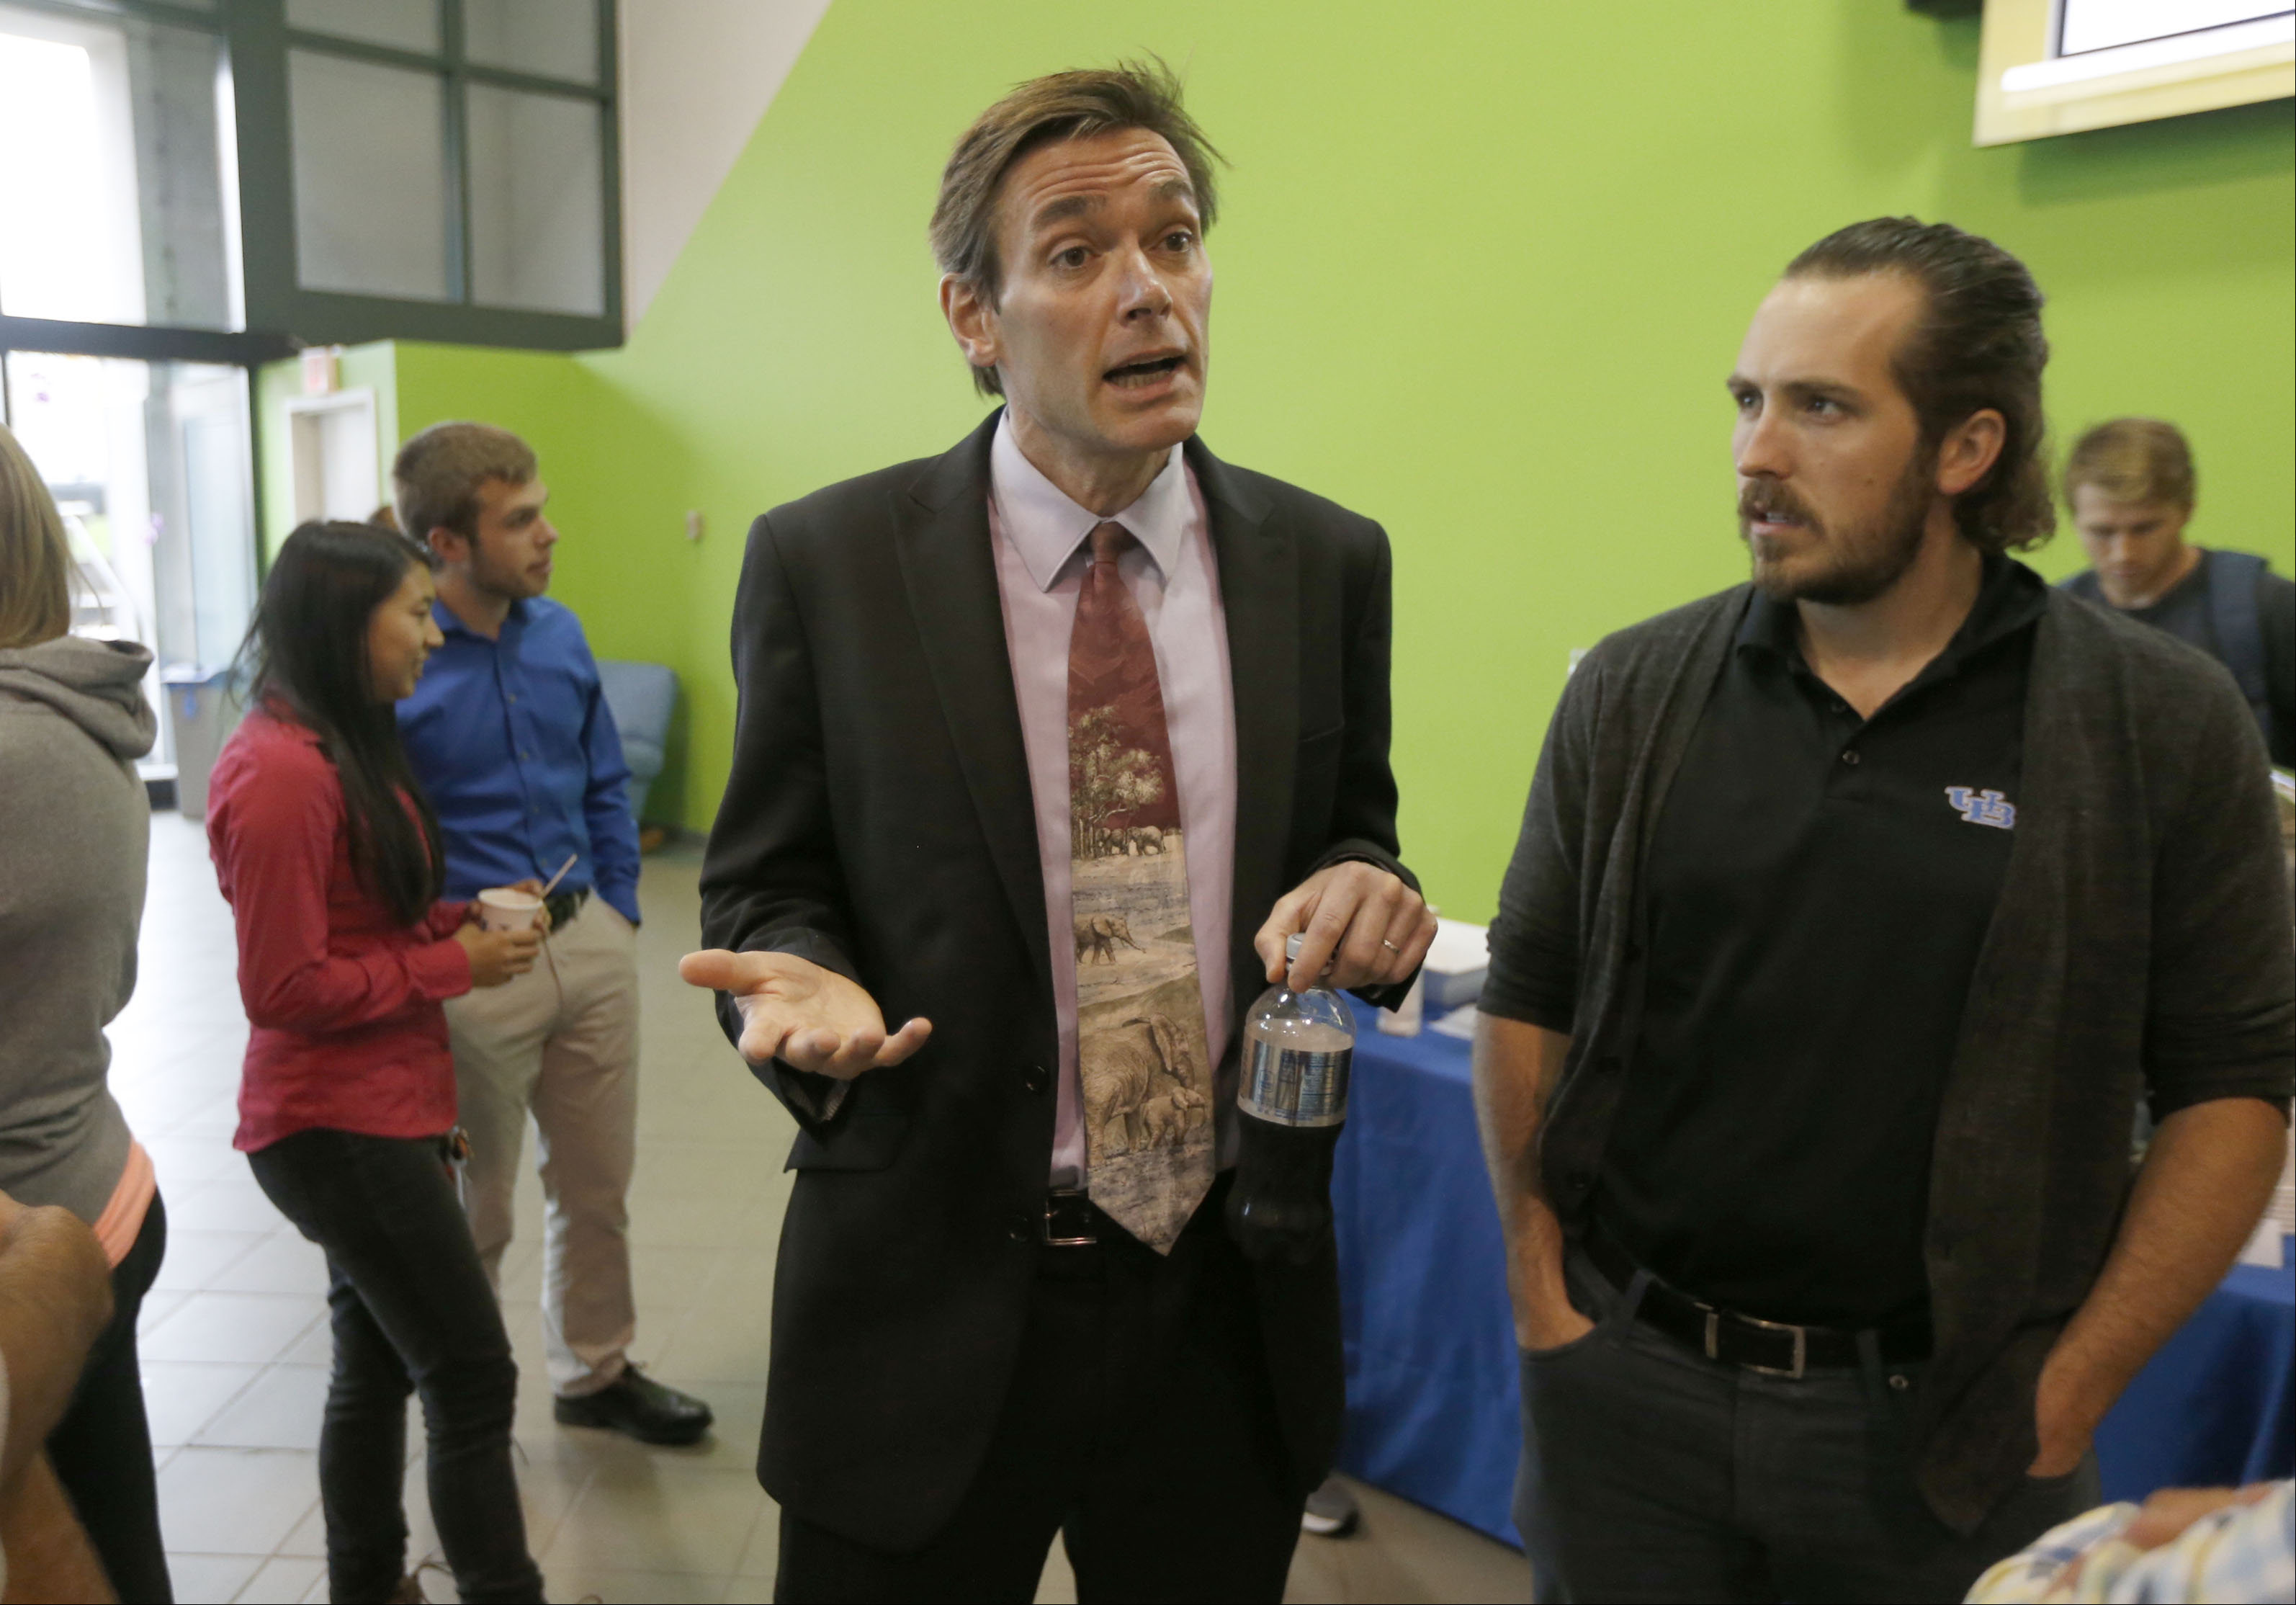 Marc Edwards, left, speaking with students before his mini-lecture in the Student Union on UB's North Campus on Thursday, Oct. 20, 2016. (Robert Kirkham/Buffalo News)